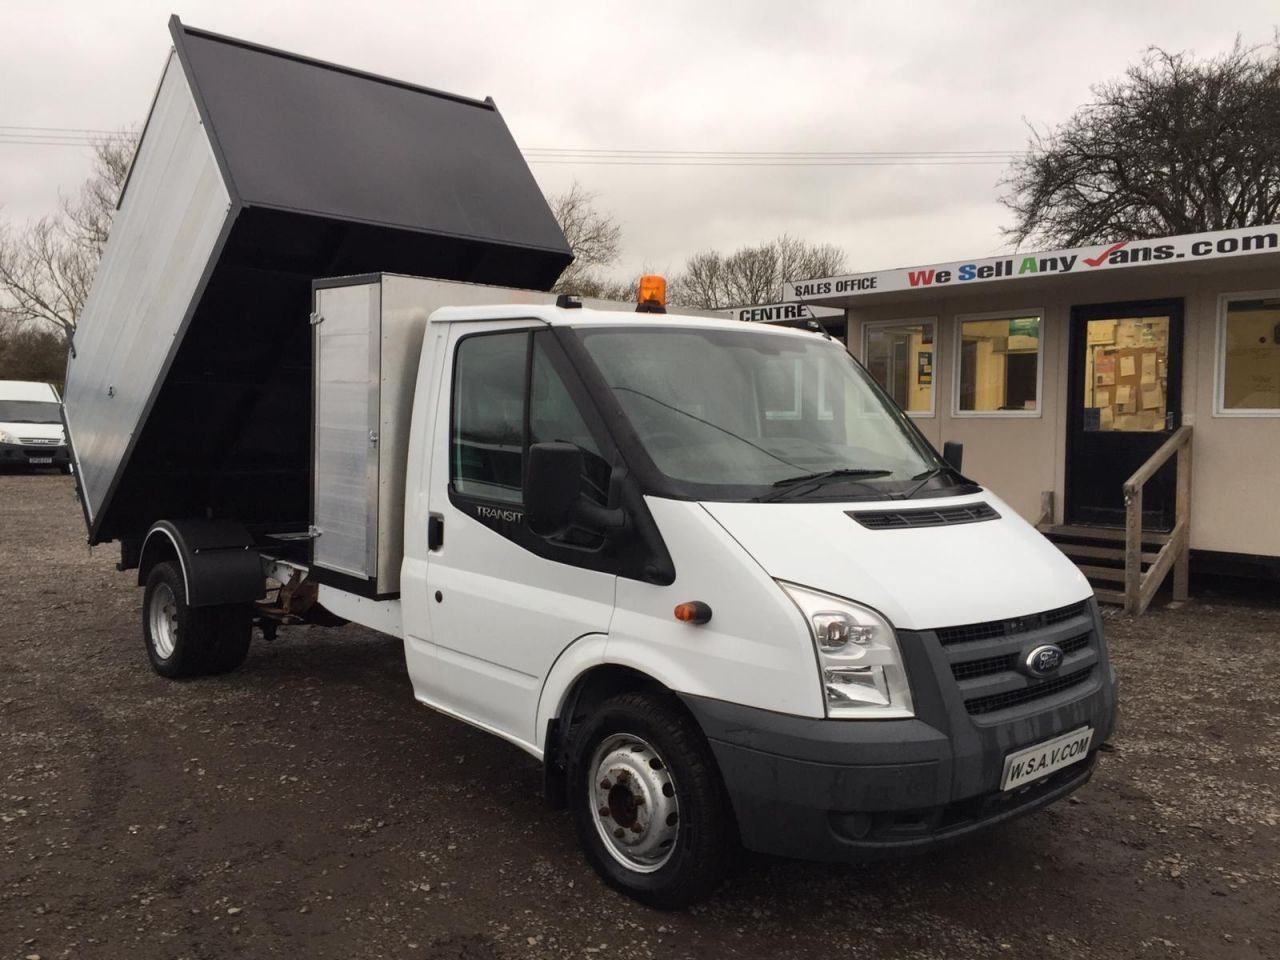 bba967cc04 2010 10 FORD TRANSIT 2.4 350 DRW TREE SURGEON   ARBORIST TIPPER NEW BUILD  100 BHP